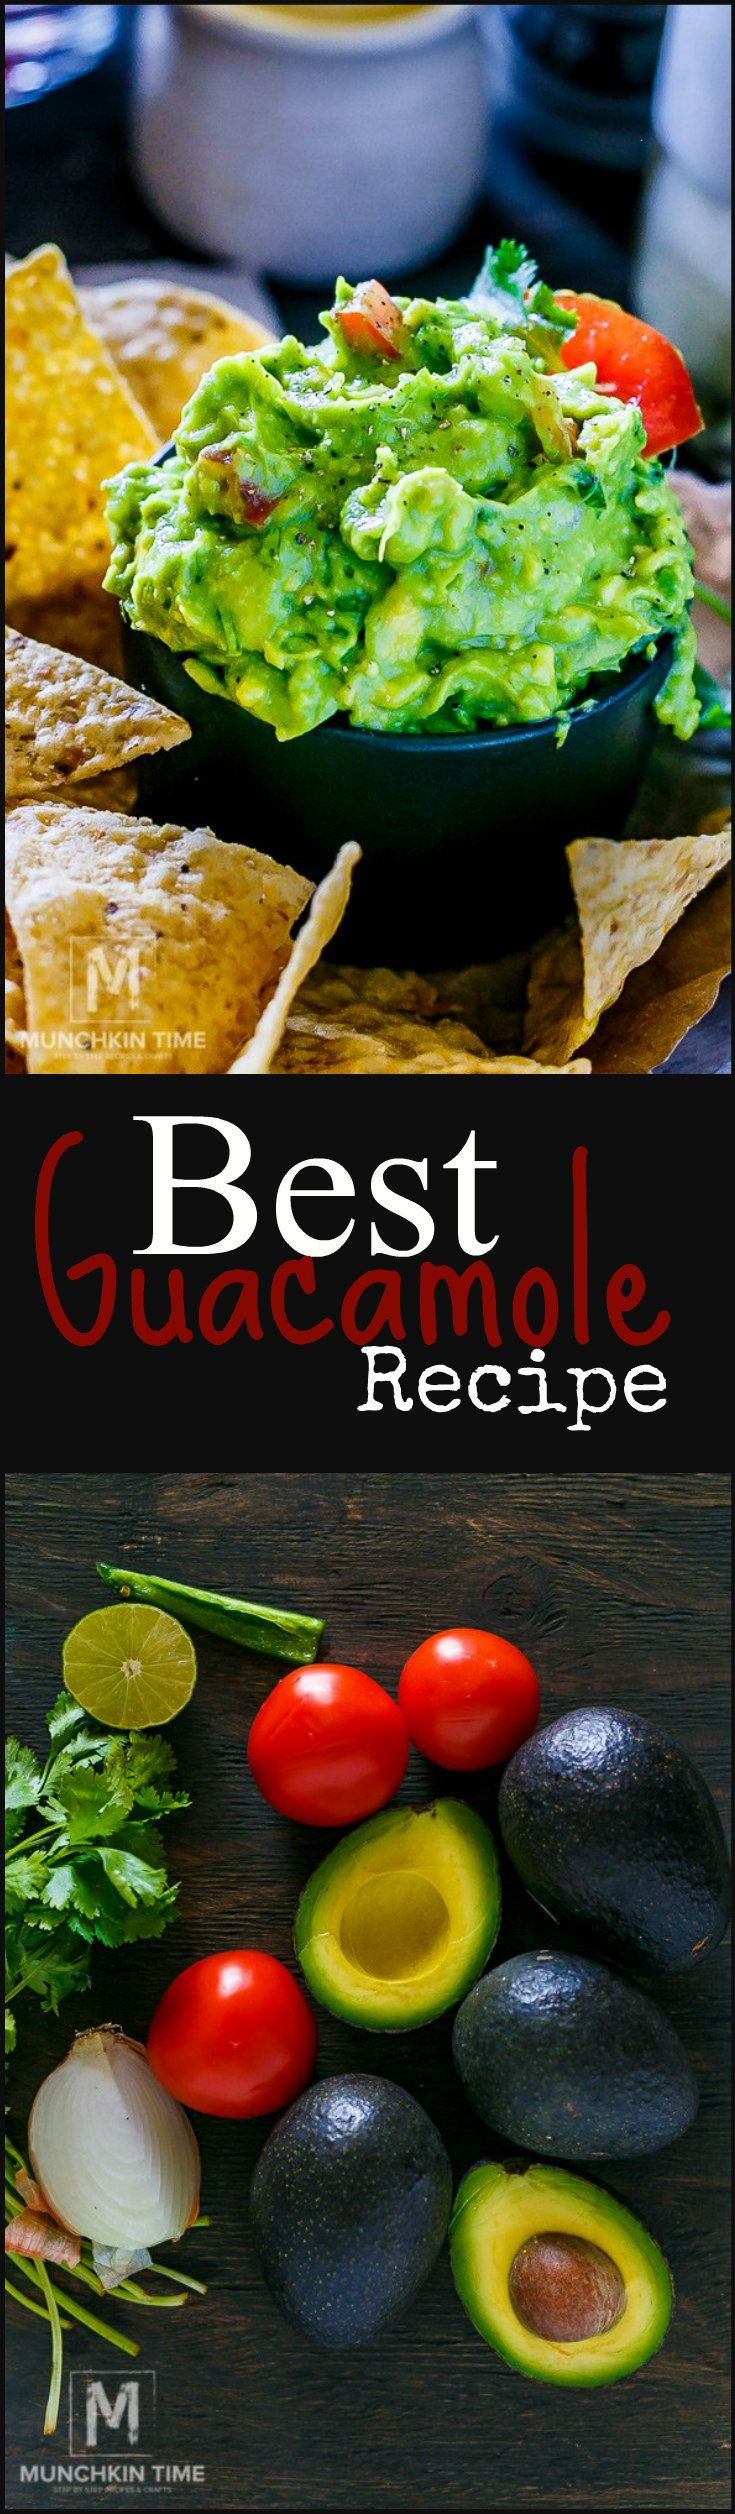 Best Guacamole Recipe Simple - It is made of fresh ingredients like ripe jumbo size avocados, ripe tomatoes on the vine, fresh cilantro, lime juice, crunchy onion and spicy jalapeño. Combine these fresh and nourishing ingredients to create an amazing Mexican appetizer Guacamole.